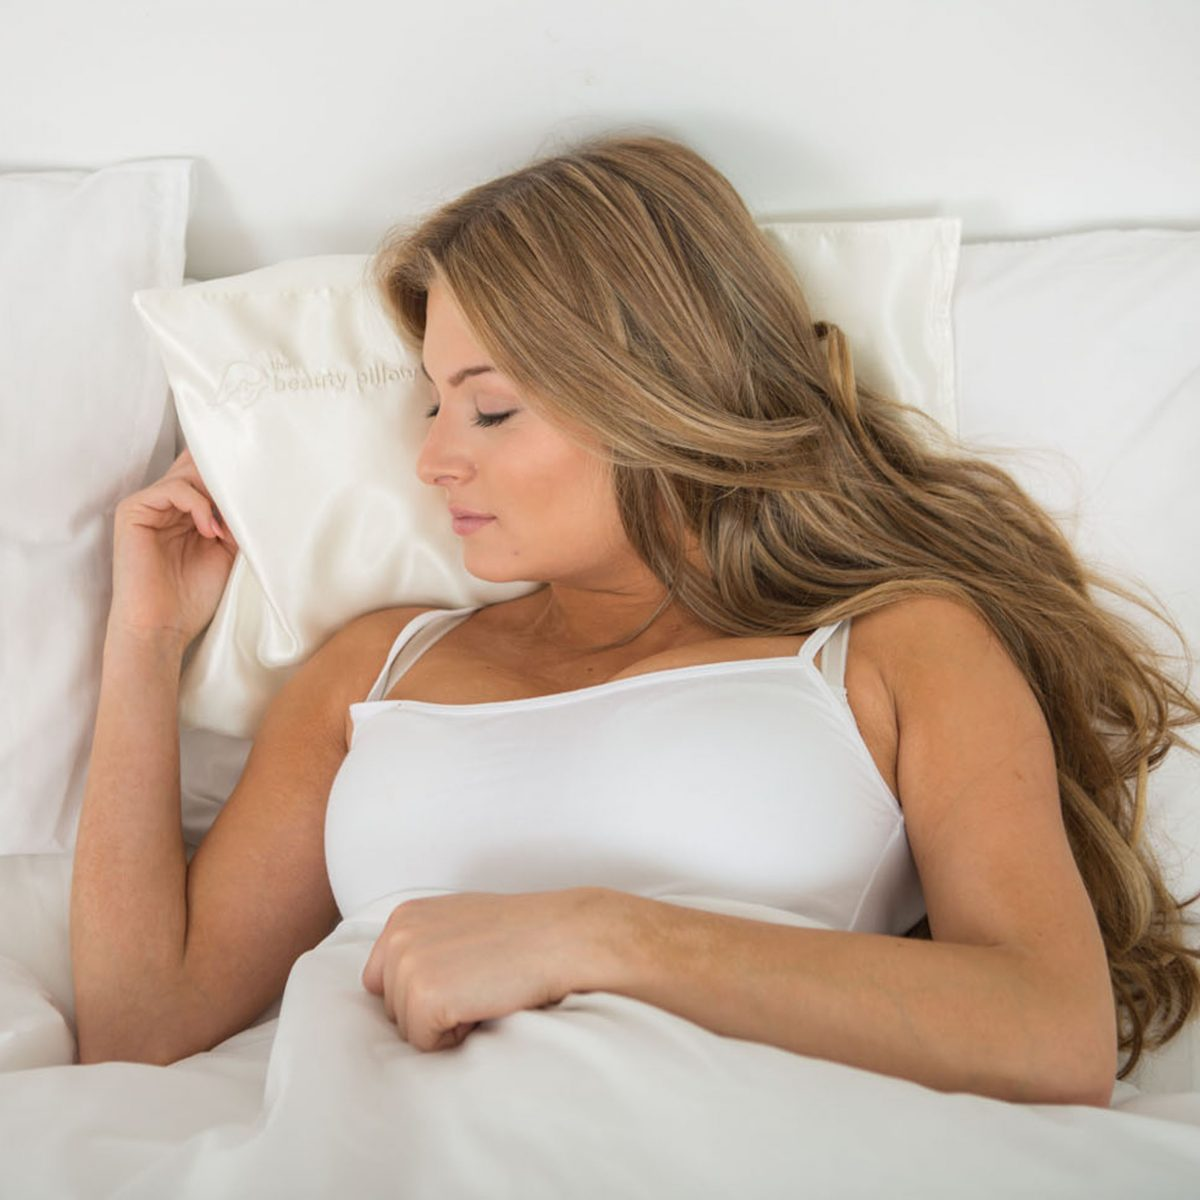 woman sleeping on beauty pillow